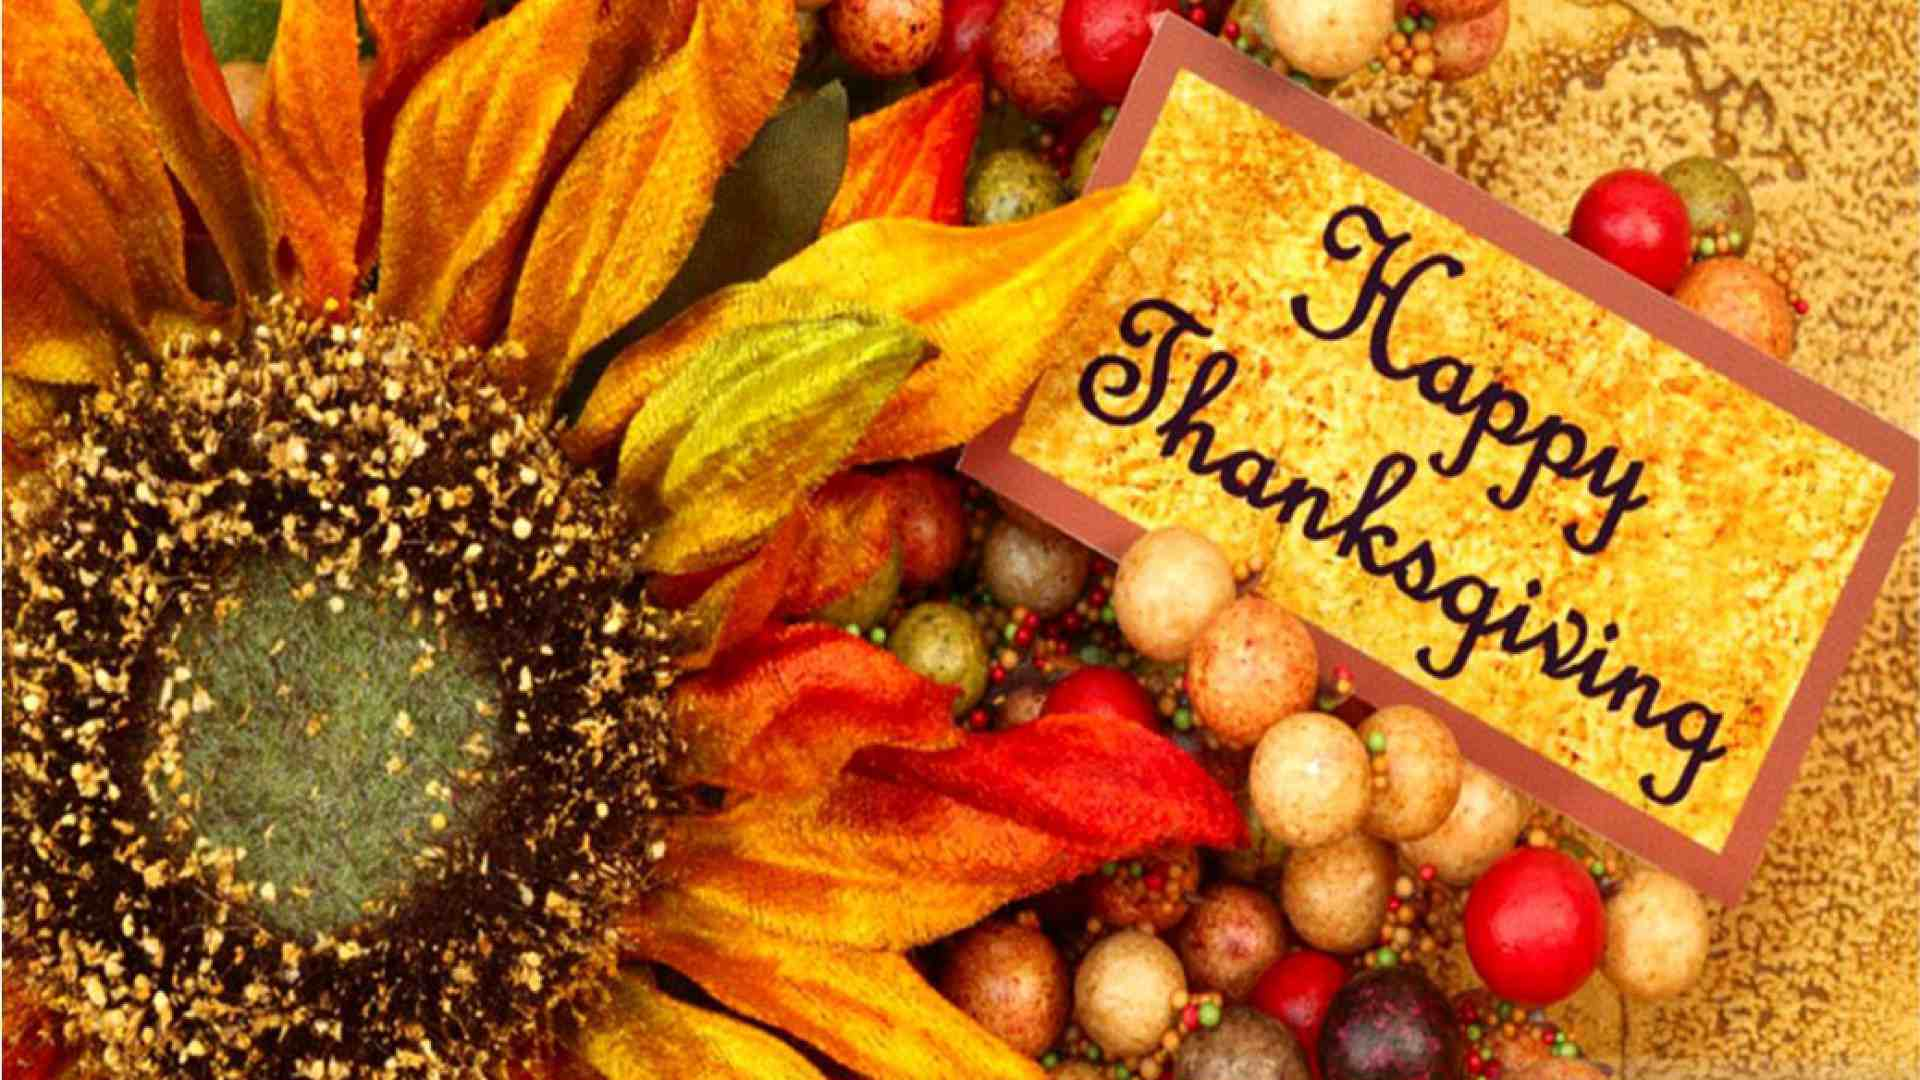 Thanksgiving Desktop Wallpapers   Top Thanksgiving Desktop 1920x1080